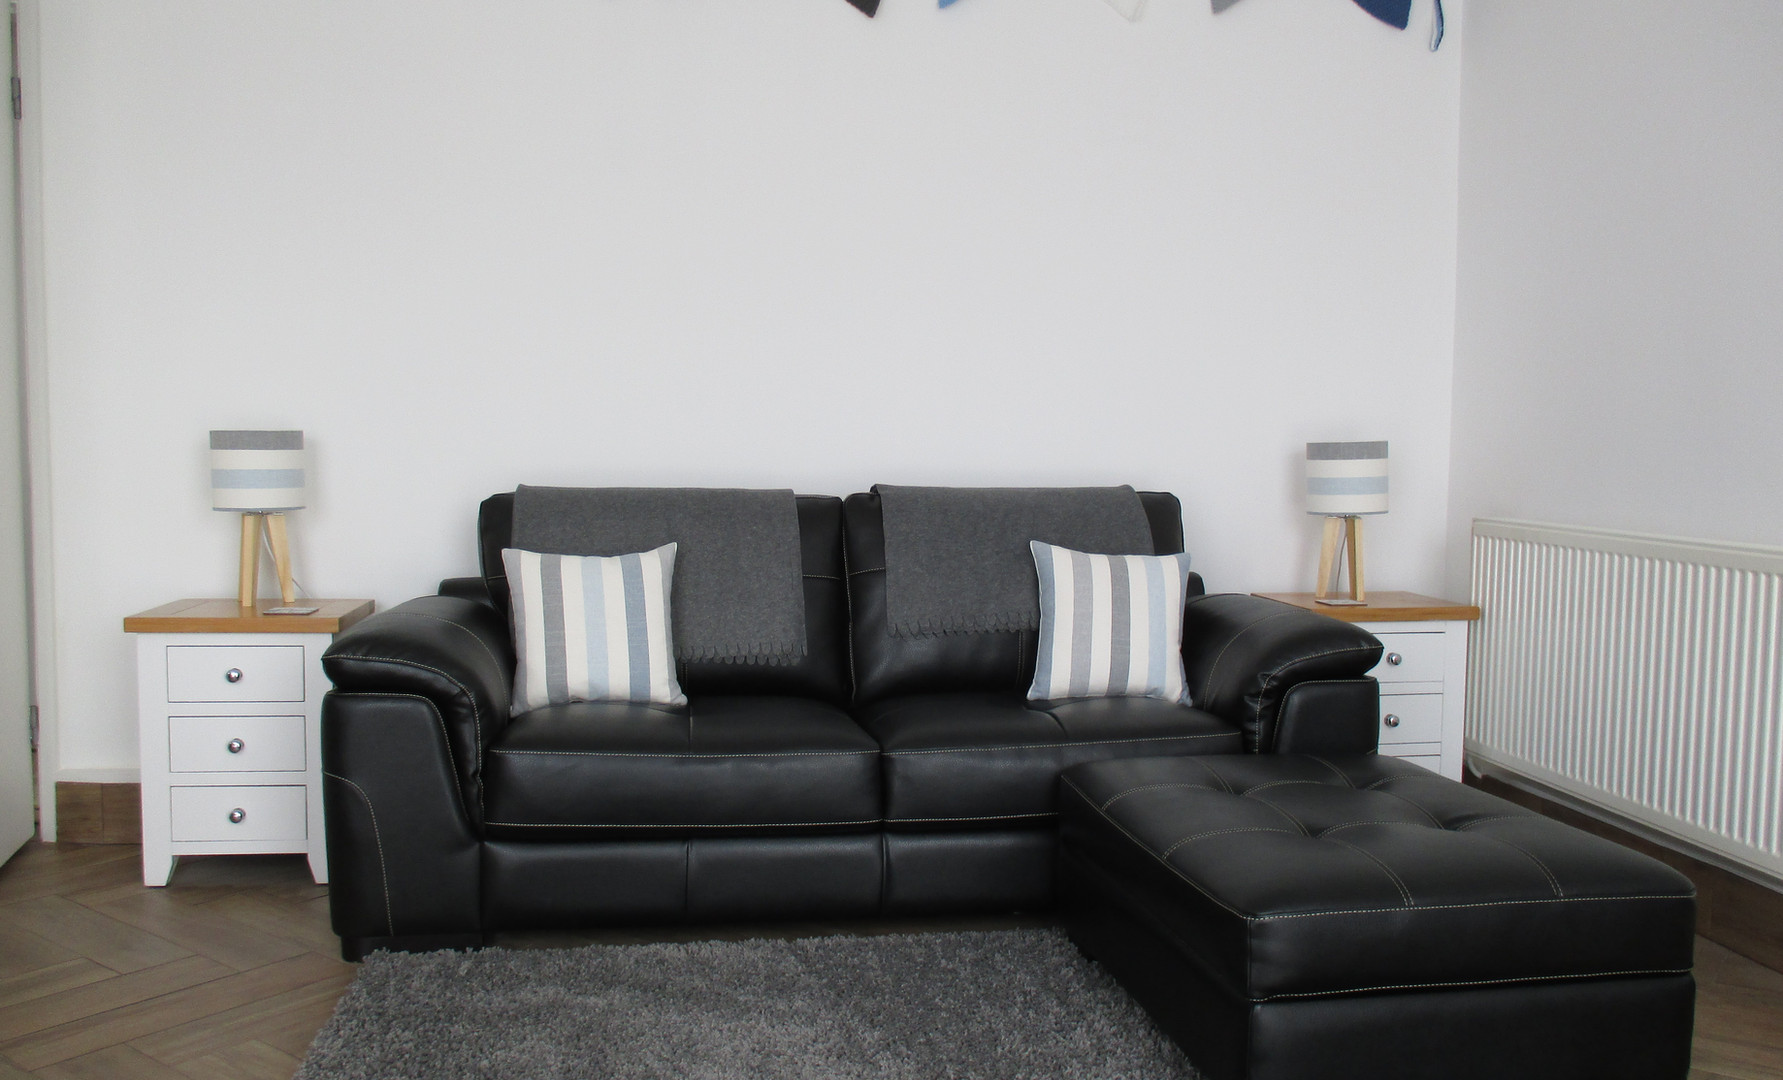 Lounge with comfy sofa